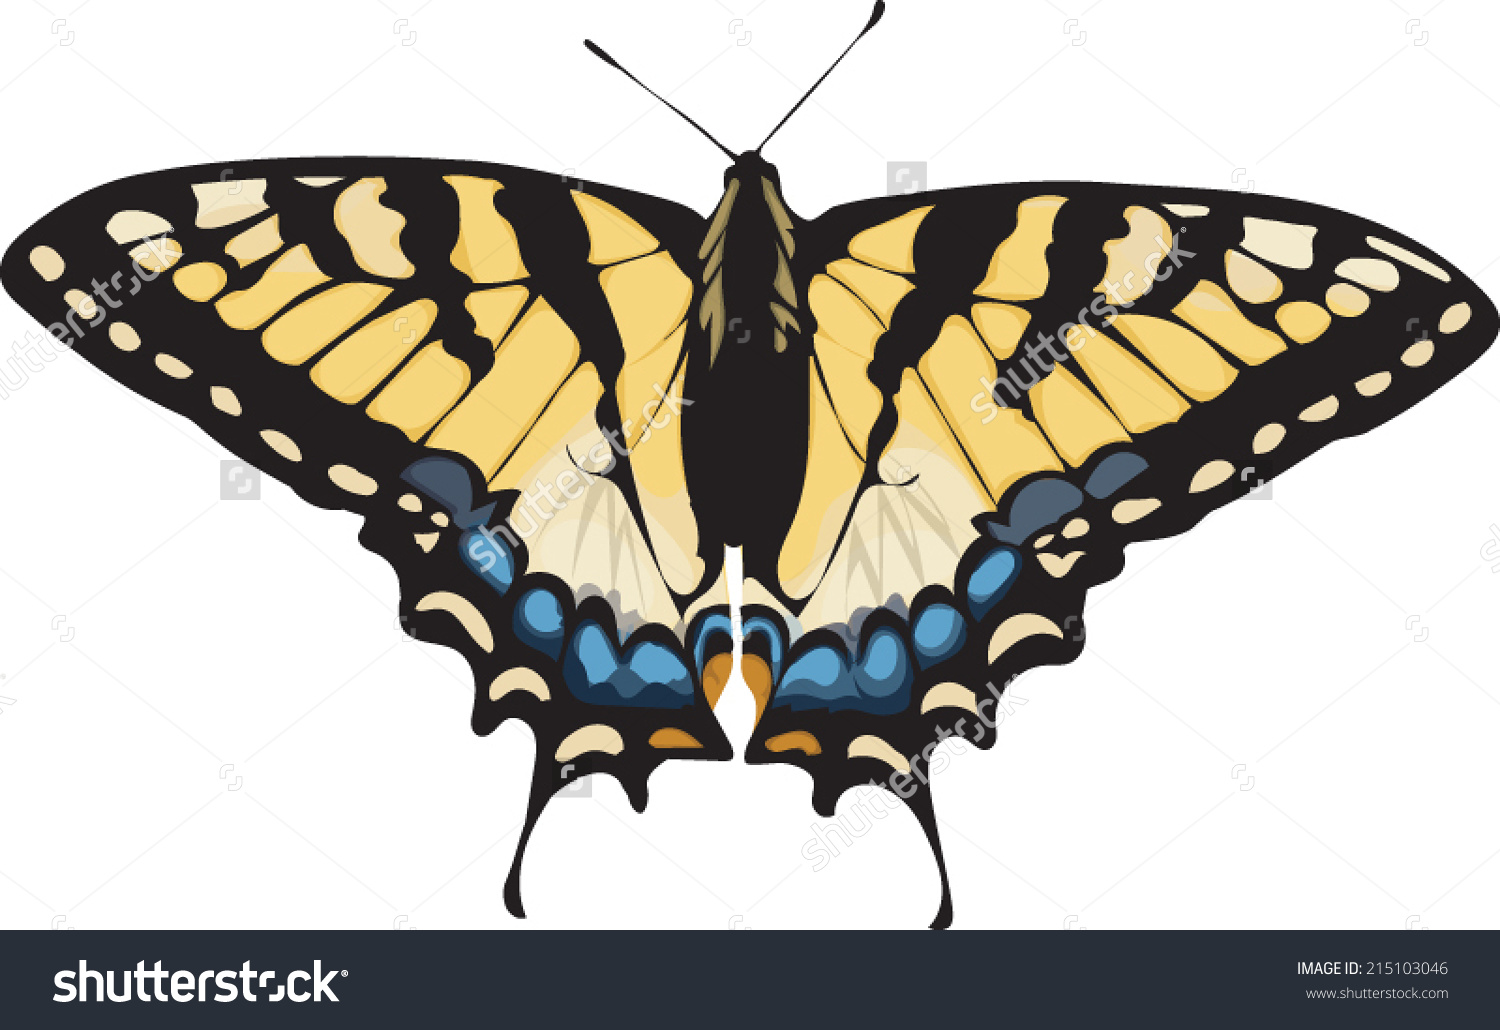 Swallowtail Butterfly clipart #7, Download drawings